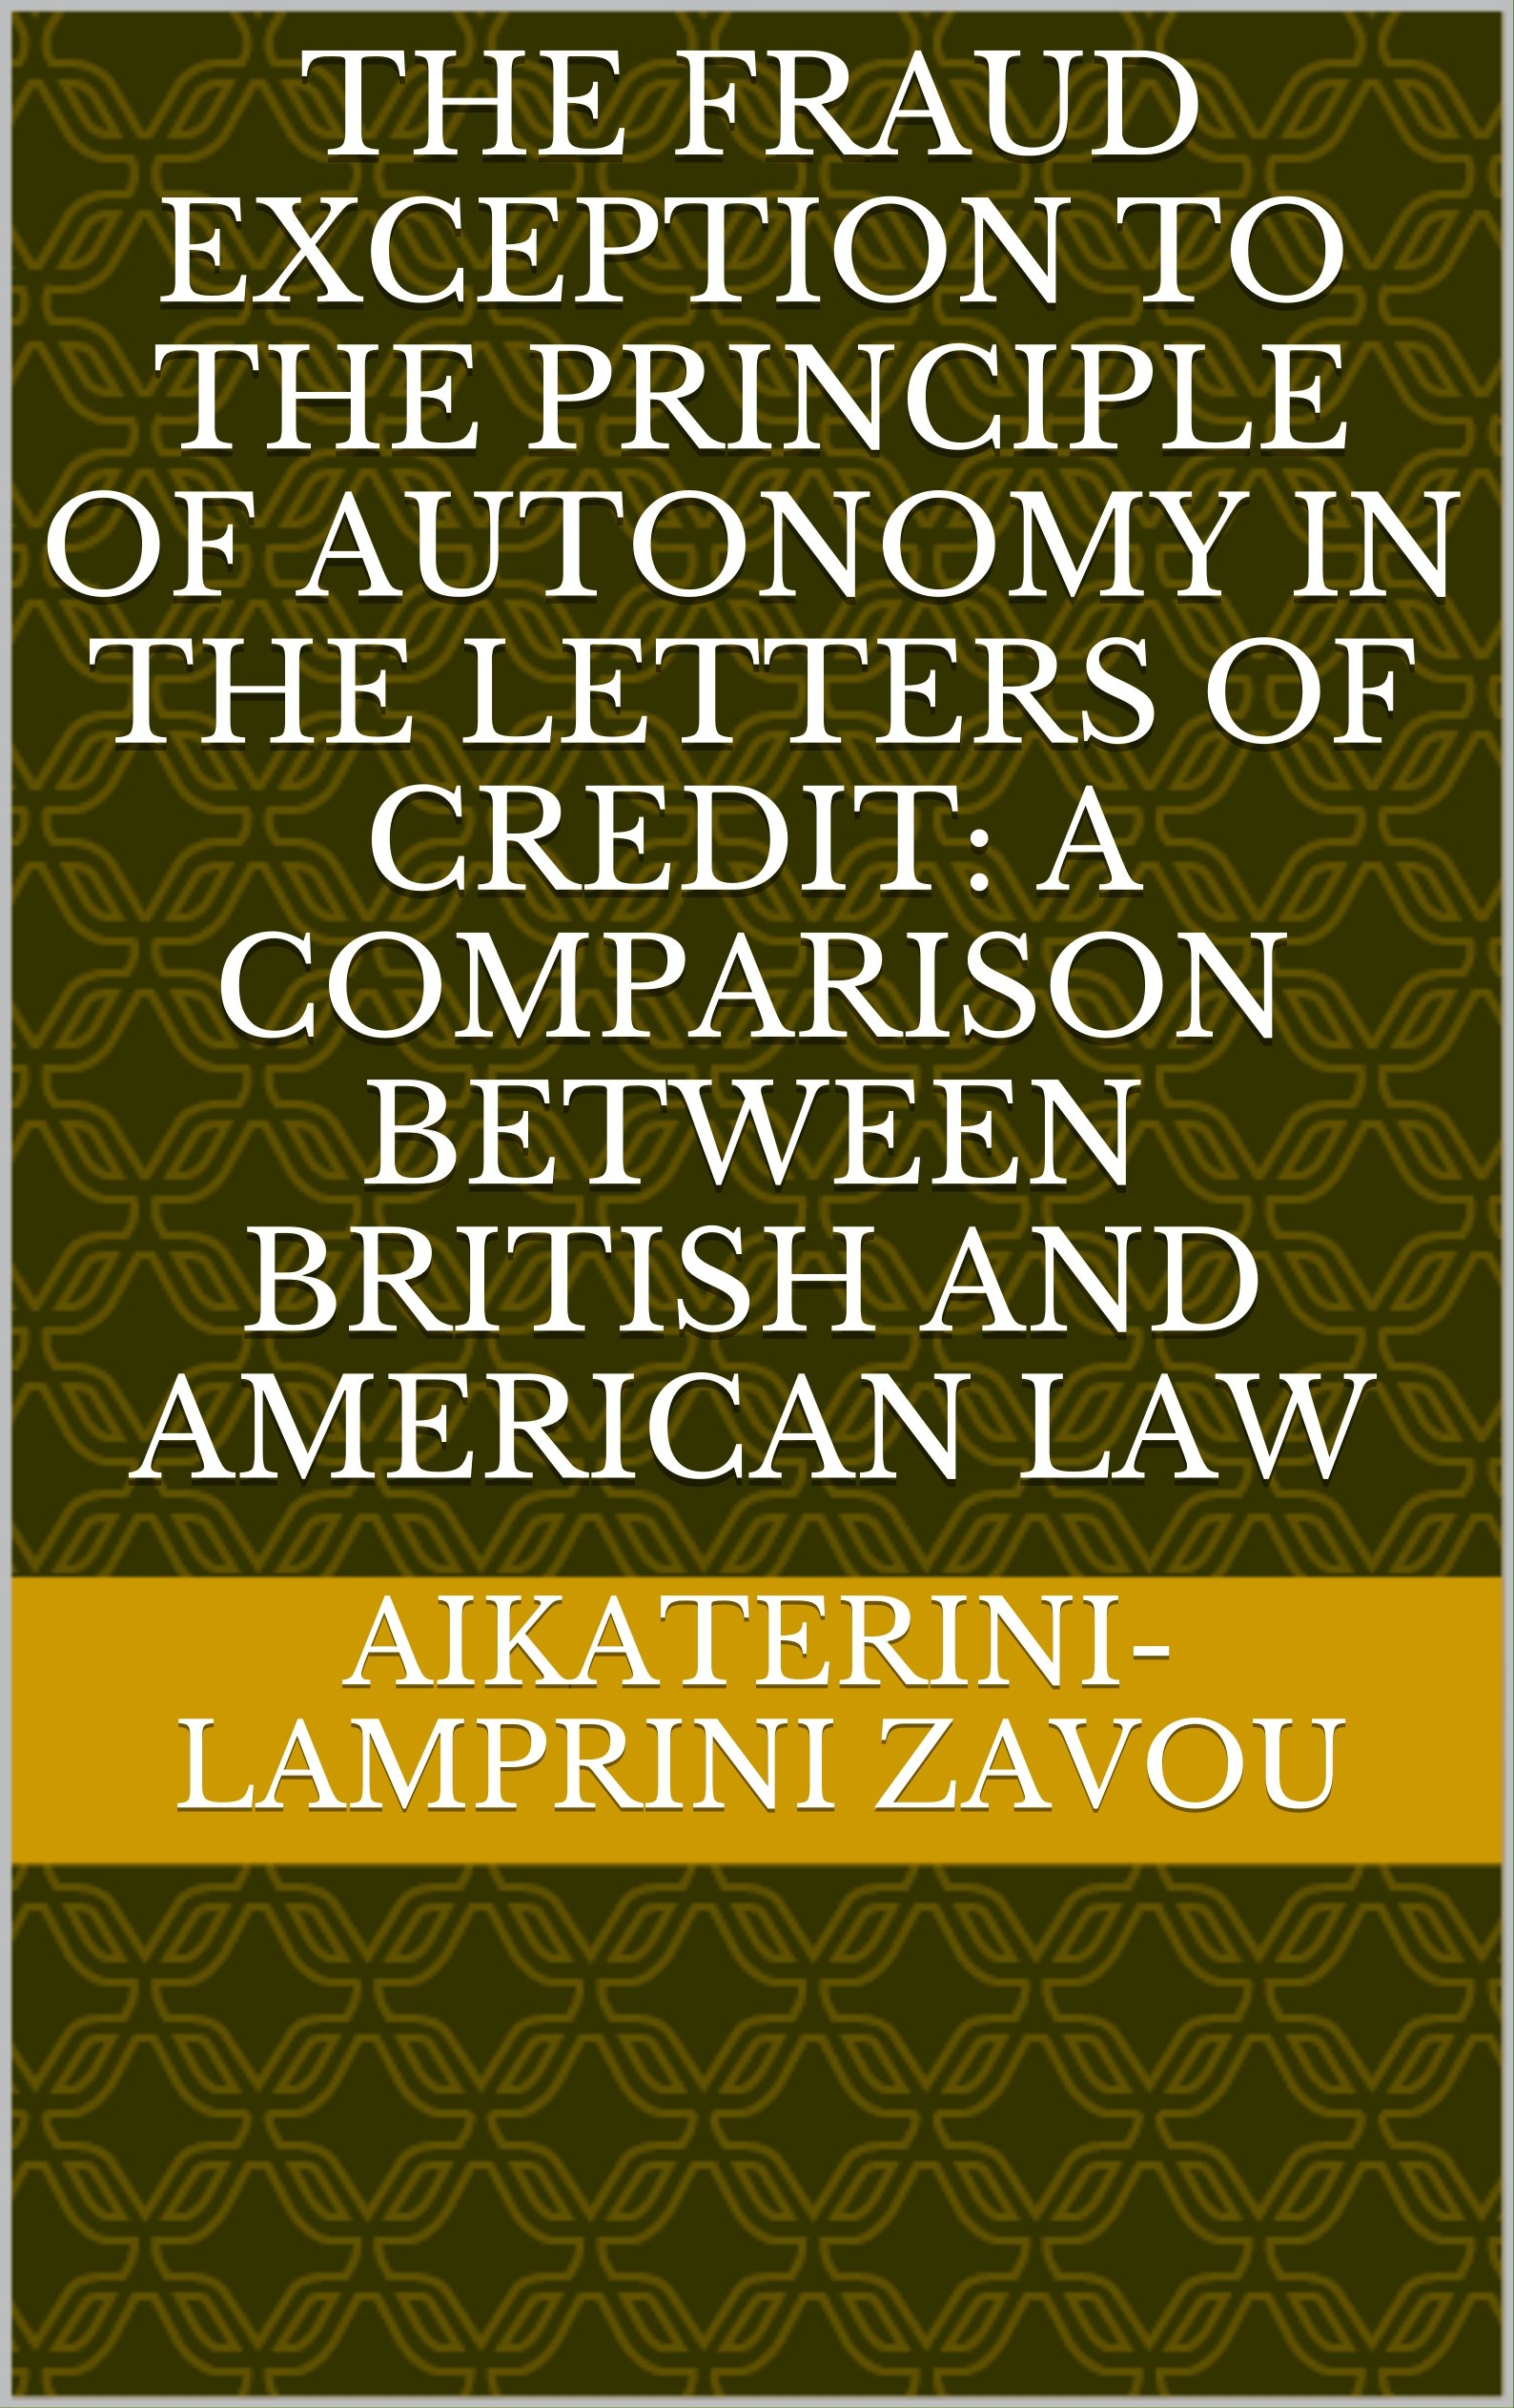 The Fraud Exception to the Principle of autonomy in the Letters of Credit: A comparison between British and American Law